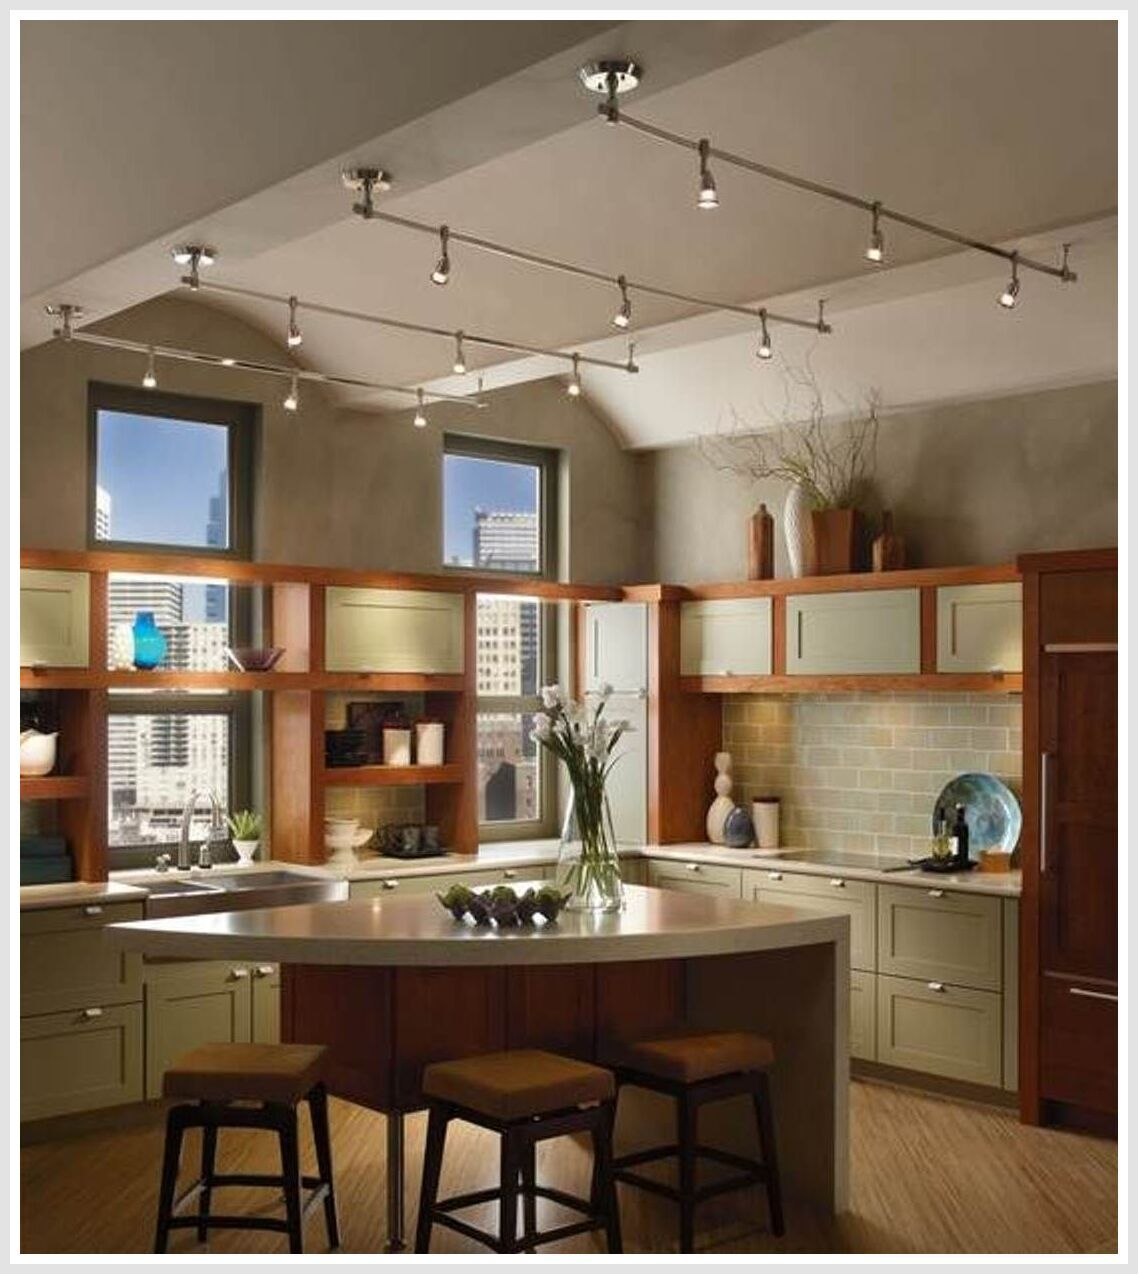 127 Reference Of Industrial Style Kitchen Island Lighting Uk In 2020 Track Lighting Kitchen Kitchen Ceiling Lights Industrial Style Kitchen